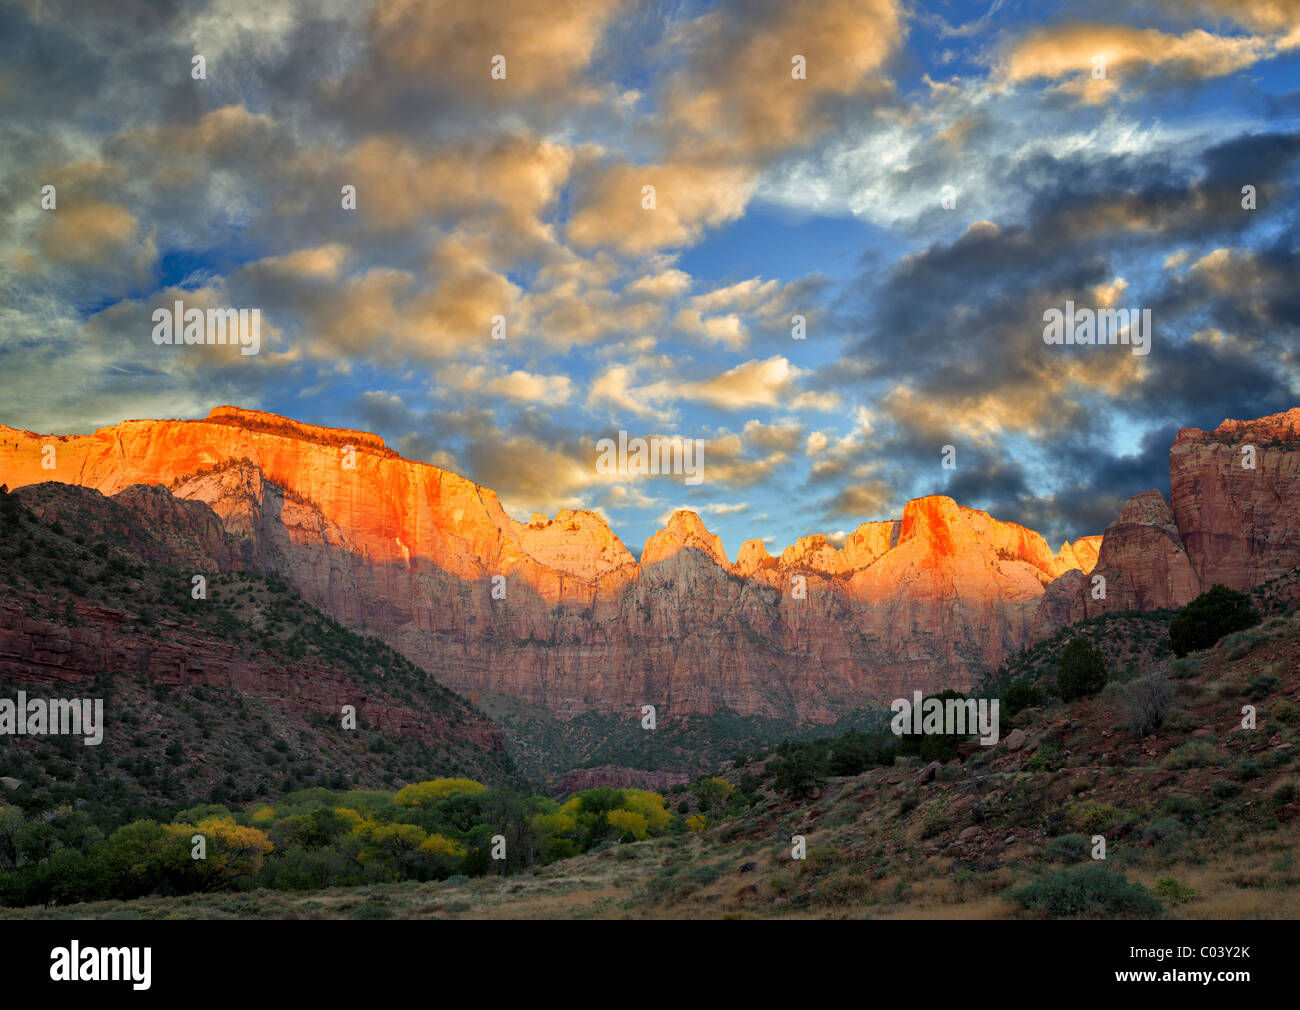 Temple and Towers of the Virgin. Zion National Park, Utah. A sky has been added. - Stock Image